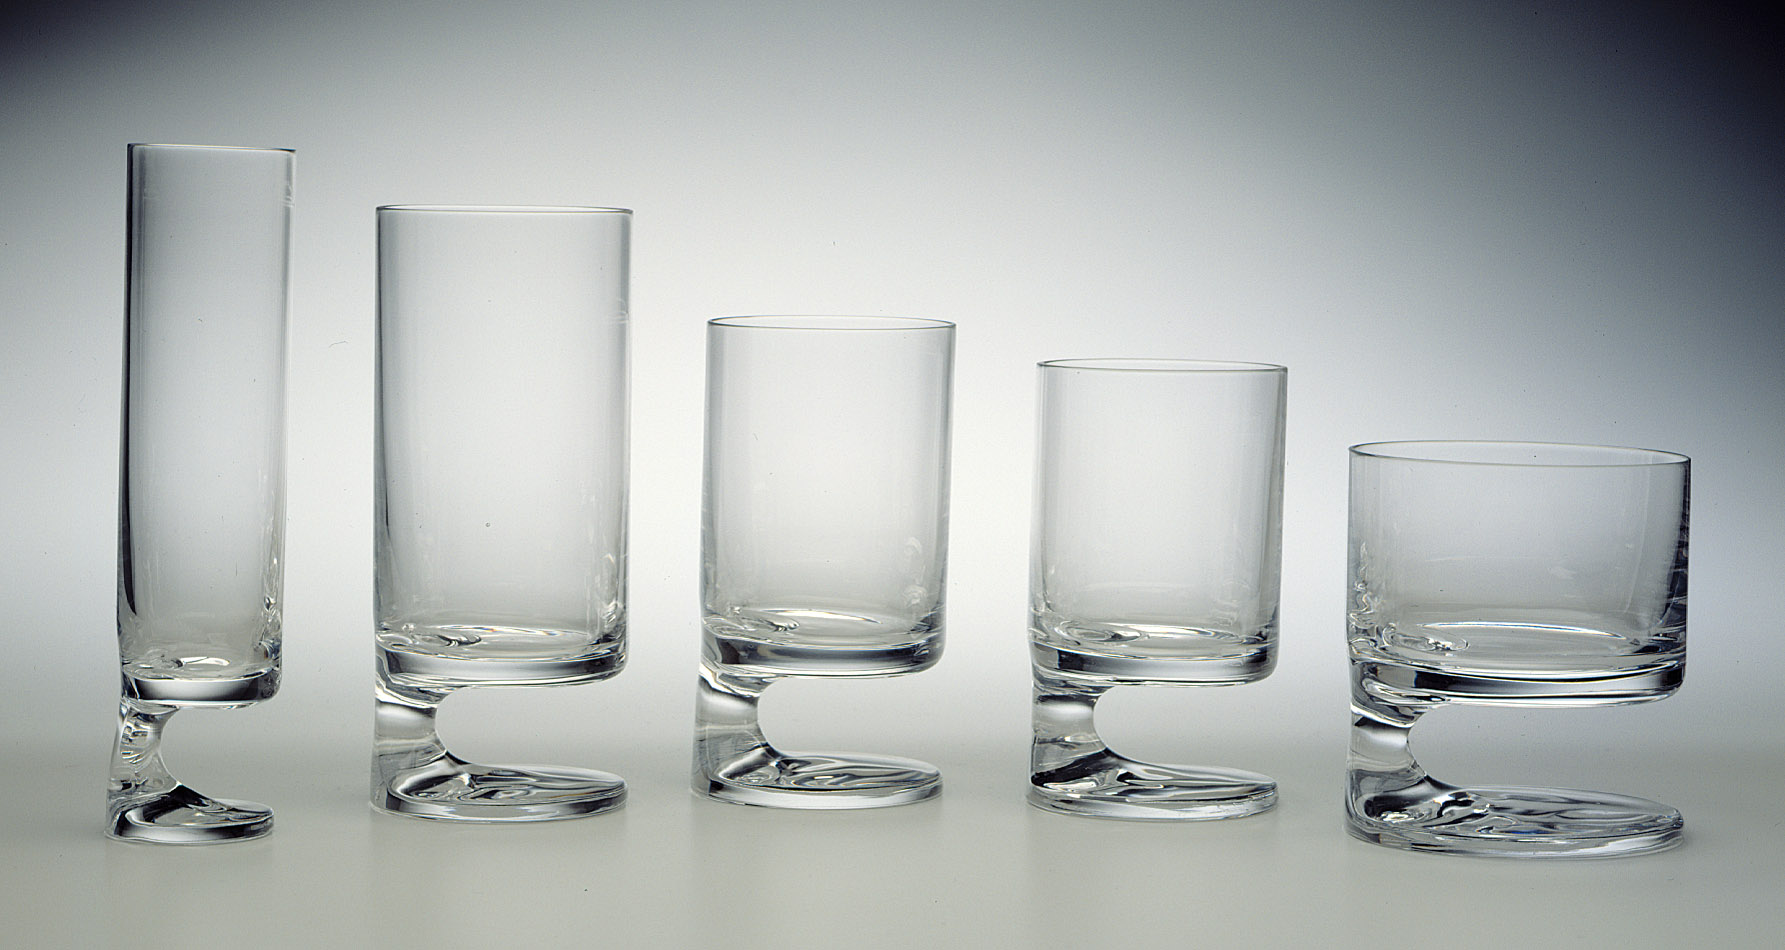 Five glasses in gradating sizes, each a cylindrical form with stem set on one side above a circular base.